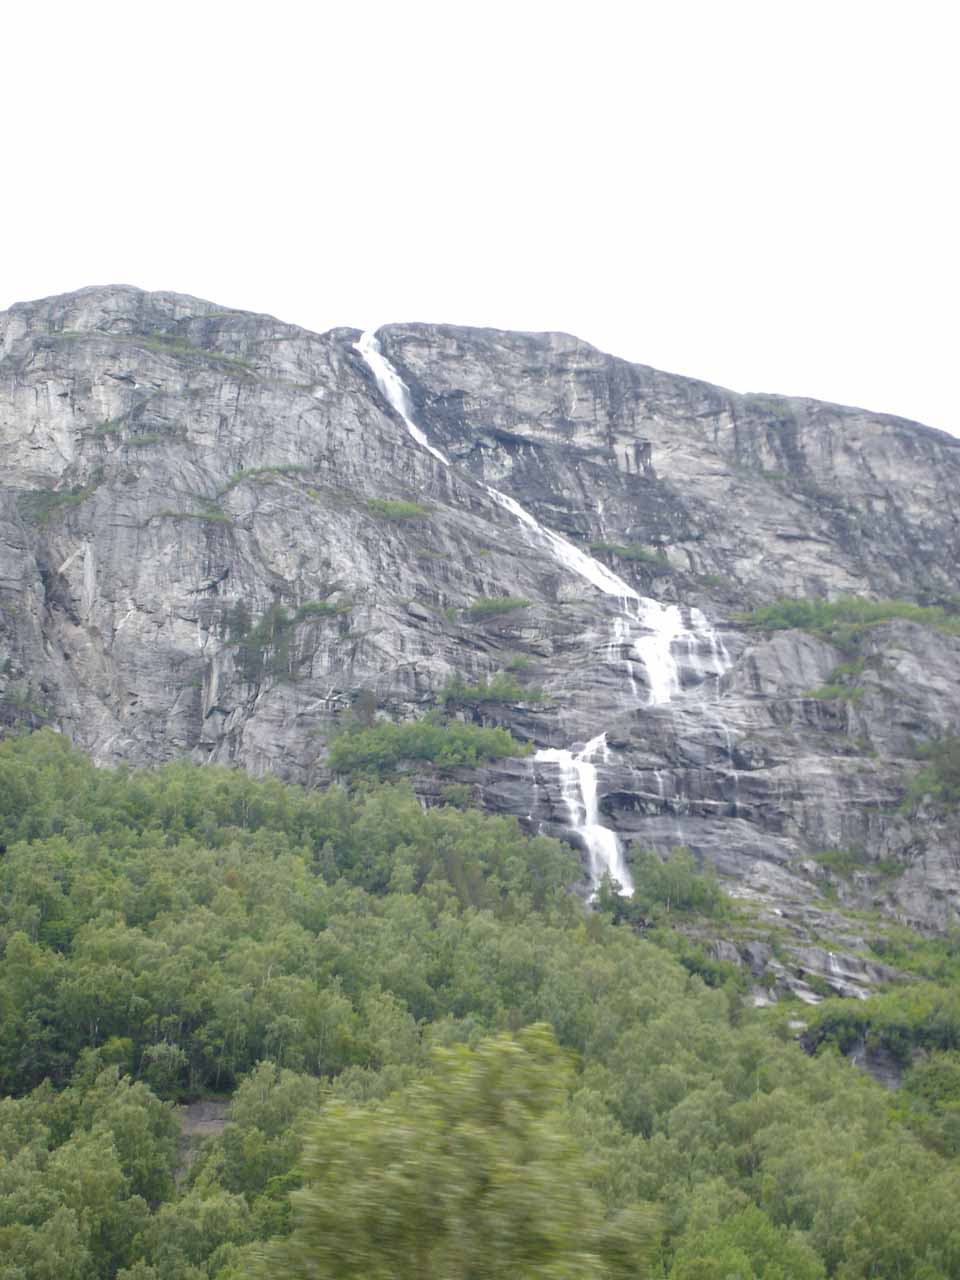 Getting past this mysterious waterfall (could it be on Rangåa, making it Rangåafossen?)